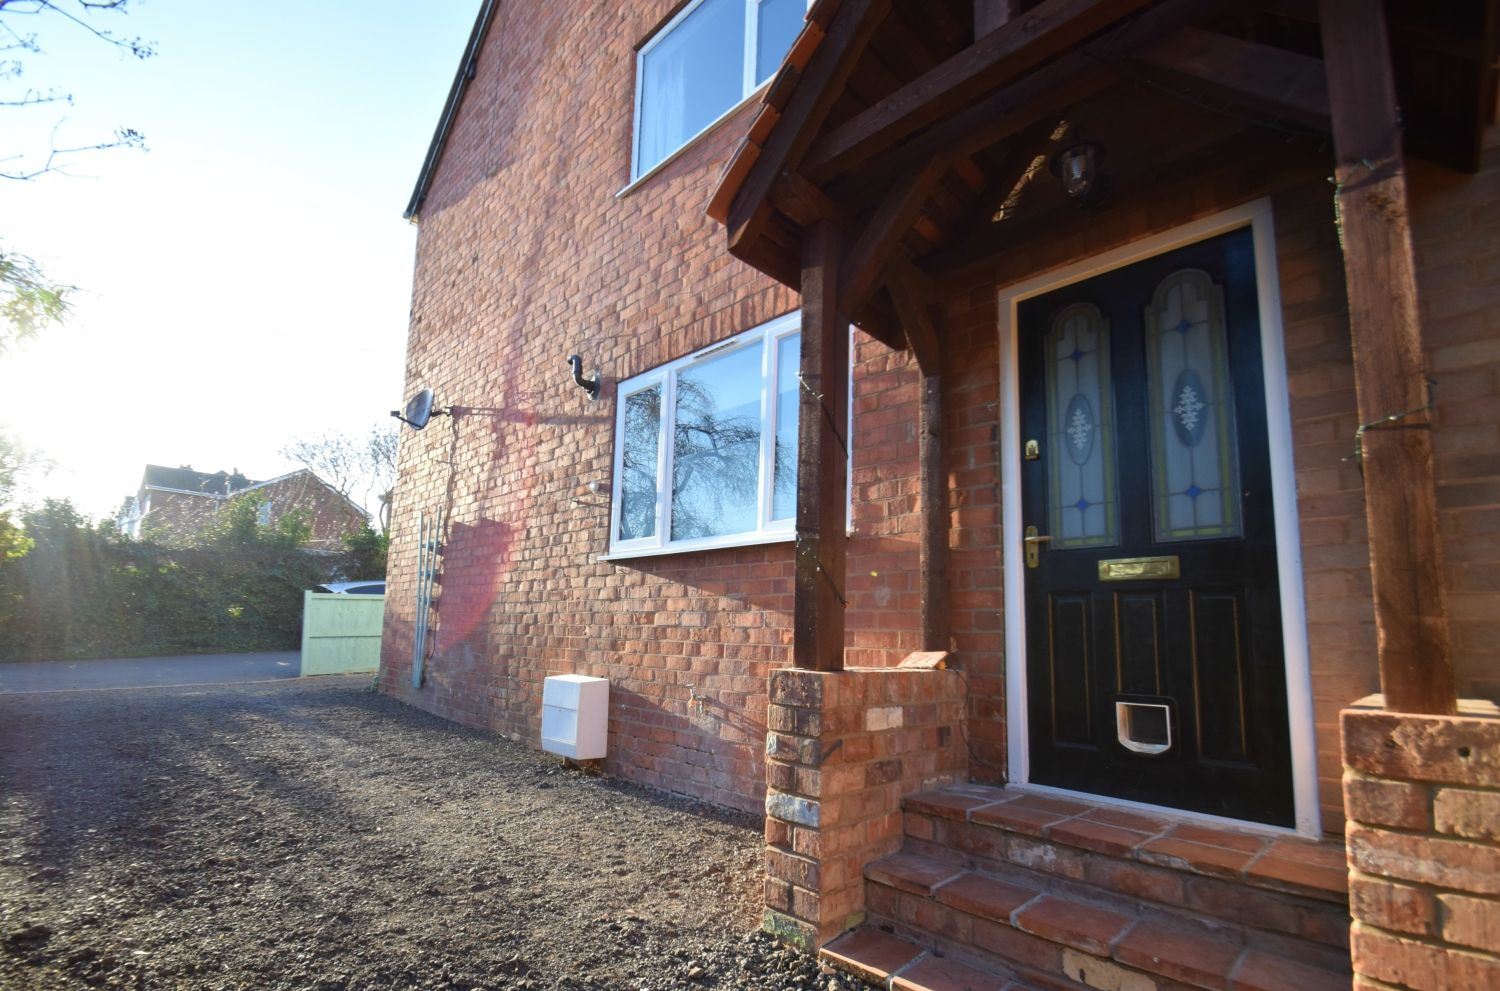 4 bed semi-detached for sale in Upland Grove, Bromsgrove, B61 31